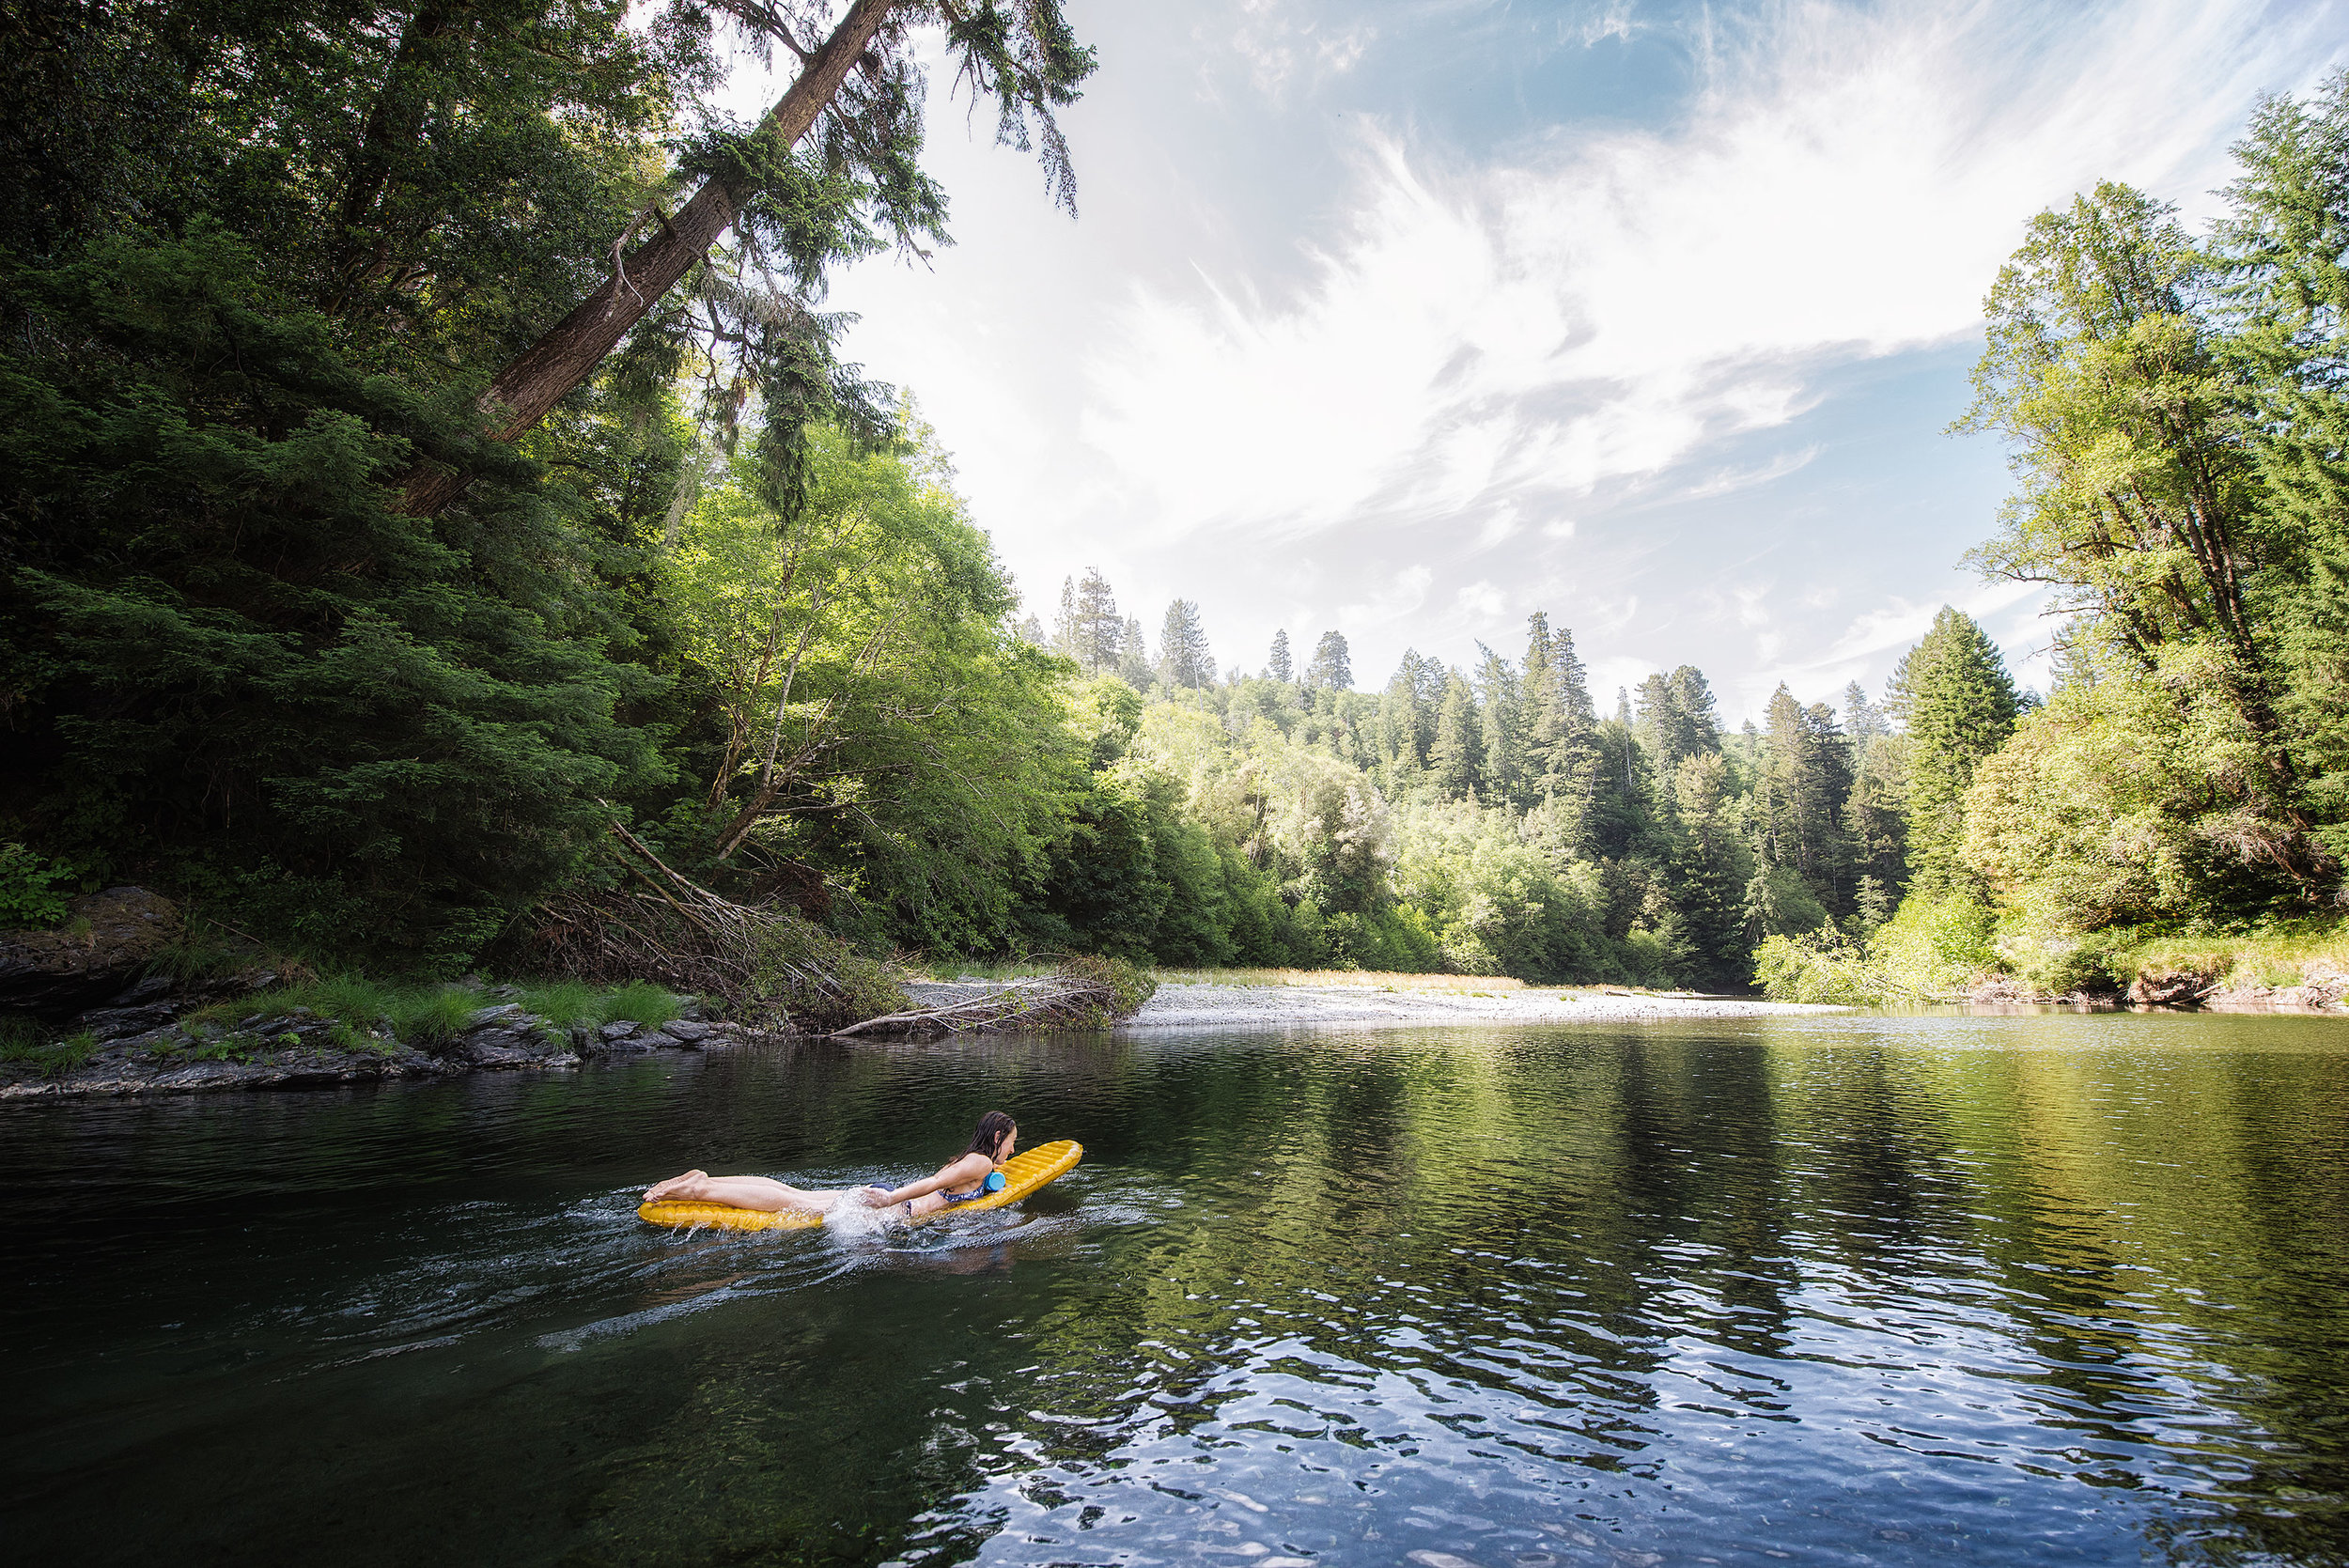 austin-trigg-redwood-water-bottle-creek-river-tall-tree-grove-california-adventure-float-swimming.jpg